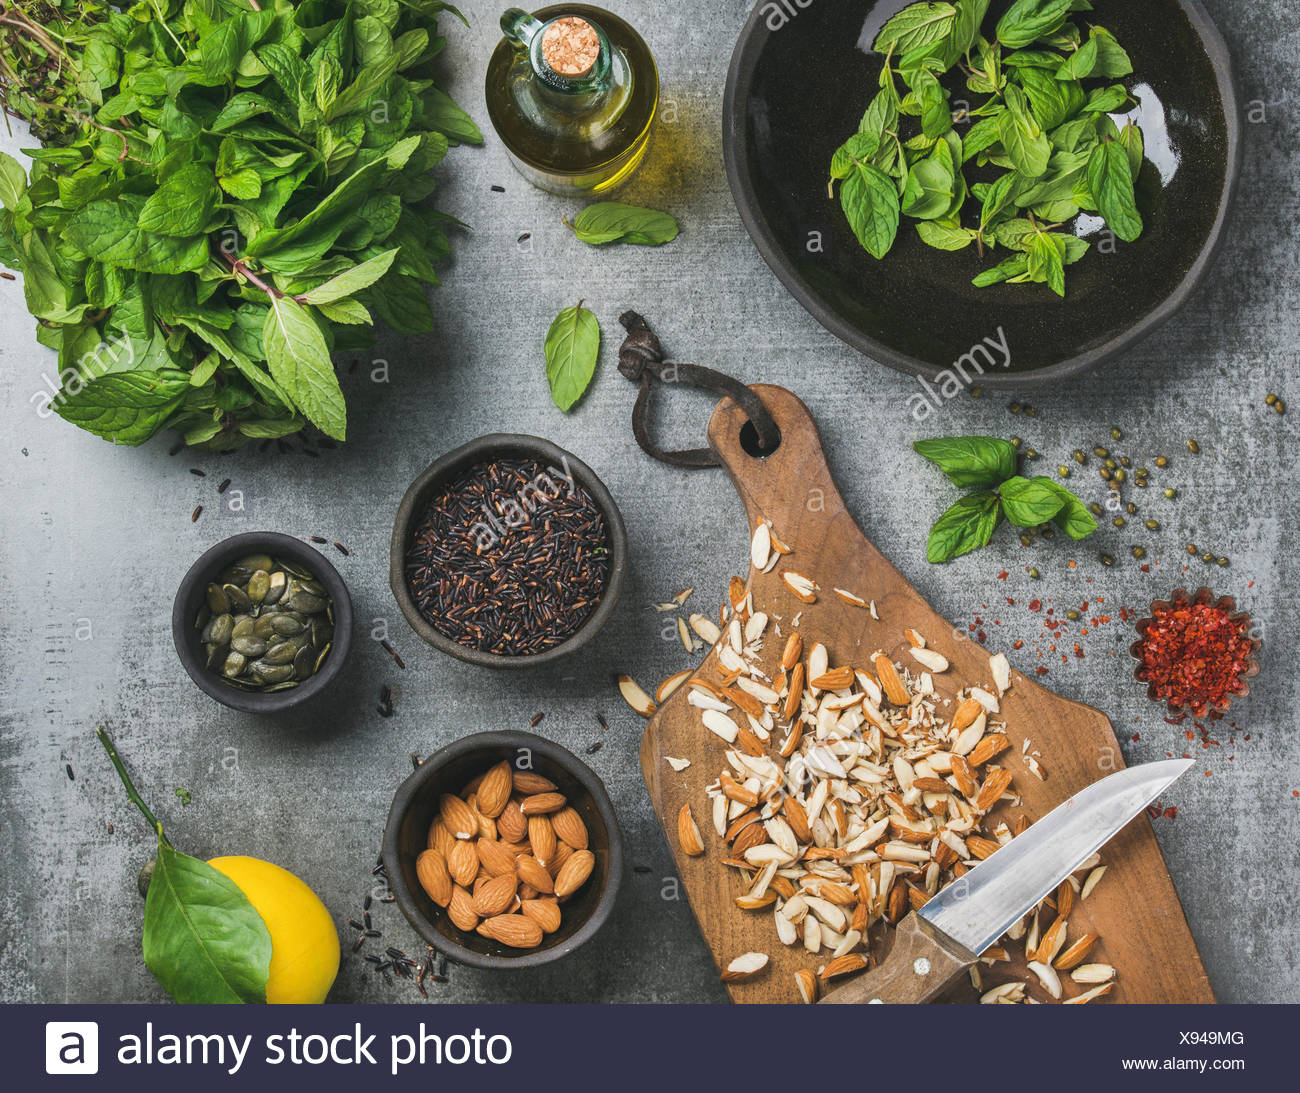 Healthy, vegetarian, vegan or clean eating cooking ingredients. Chopped almonds, fresh mint, oil, black rice, pumpkin seeds spices, lemon over grey co - Stock Image